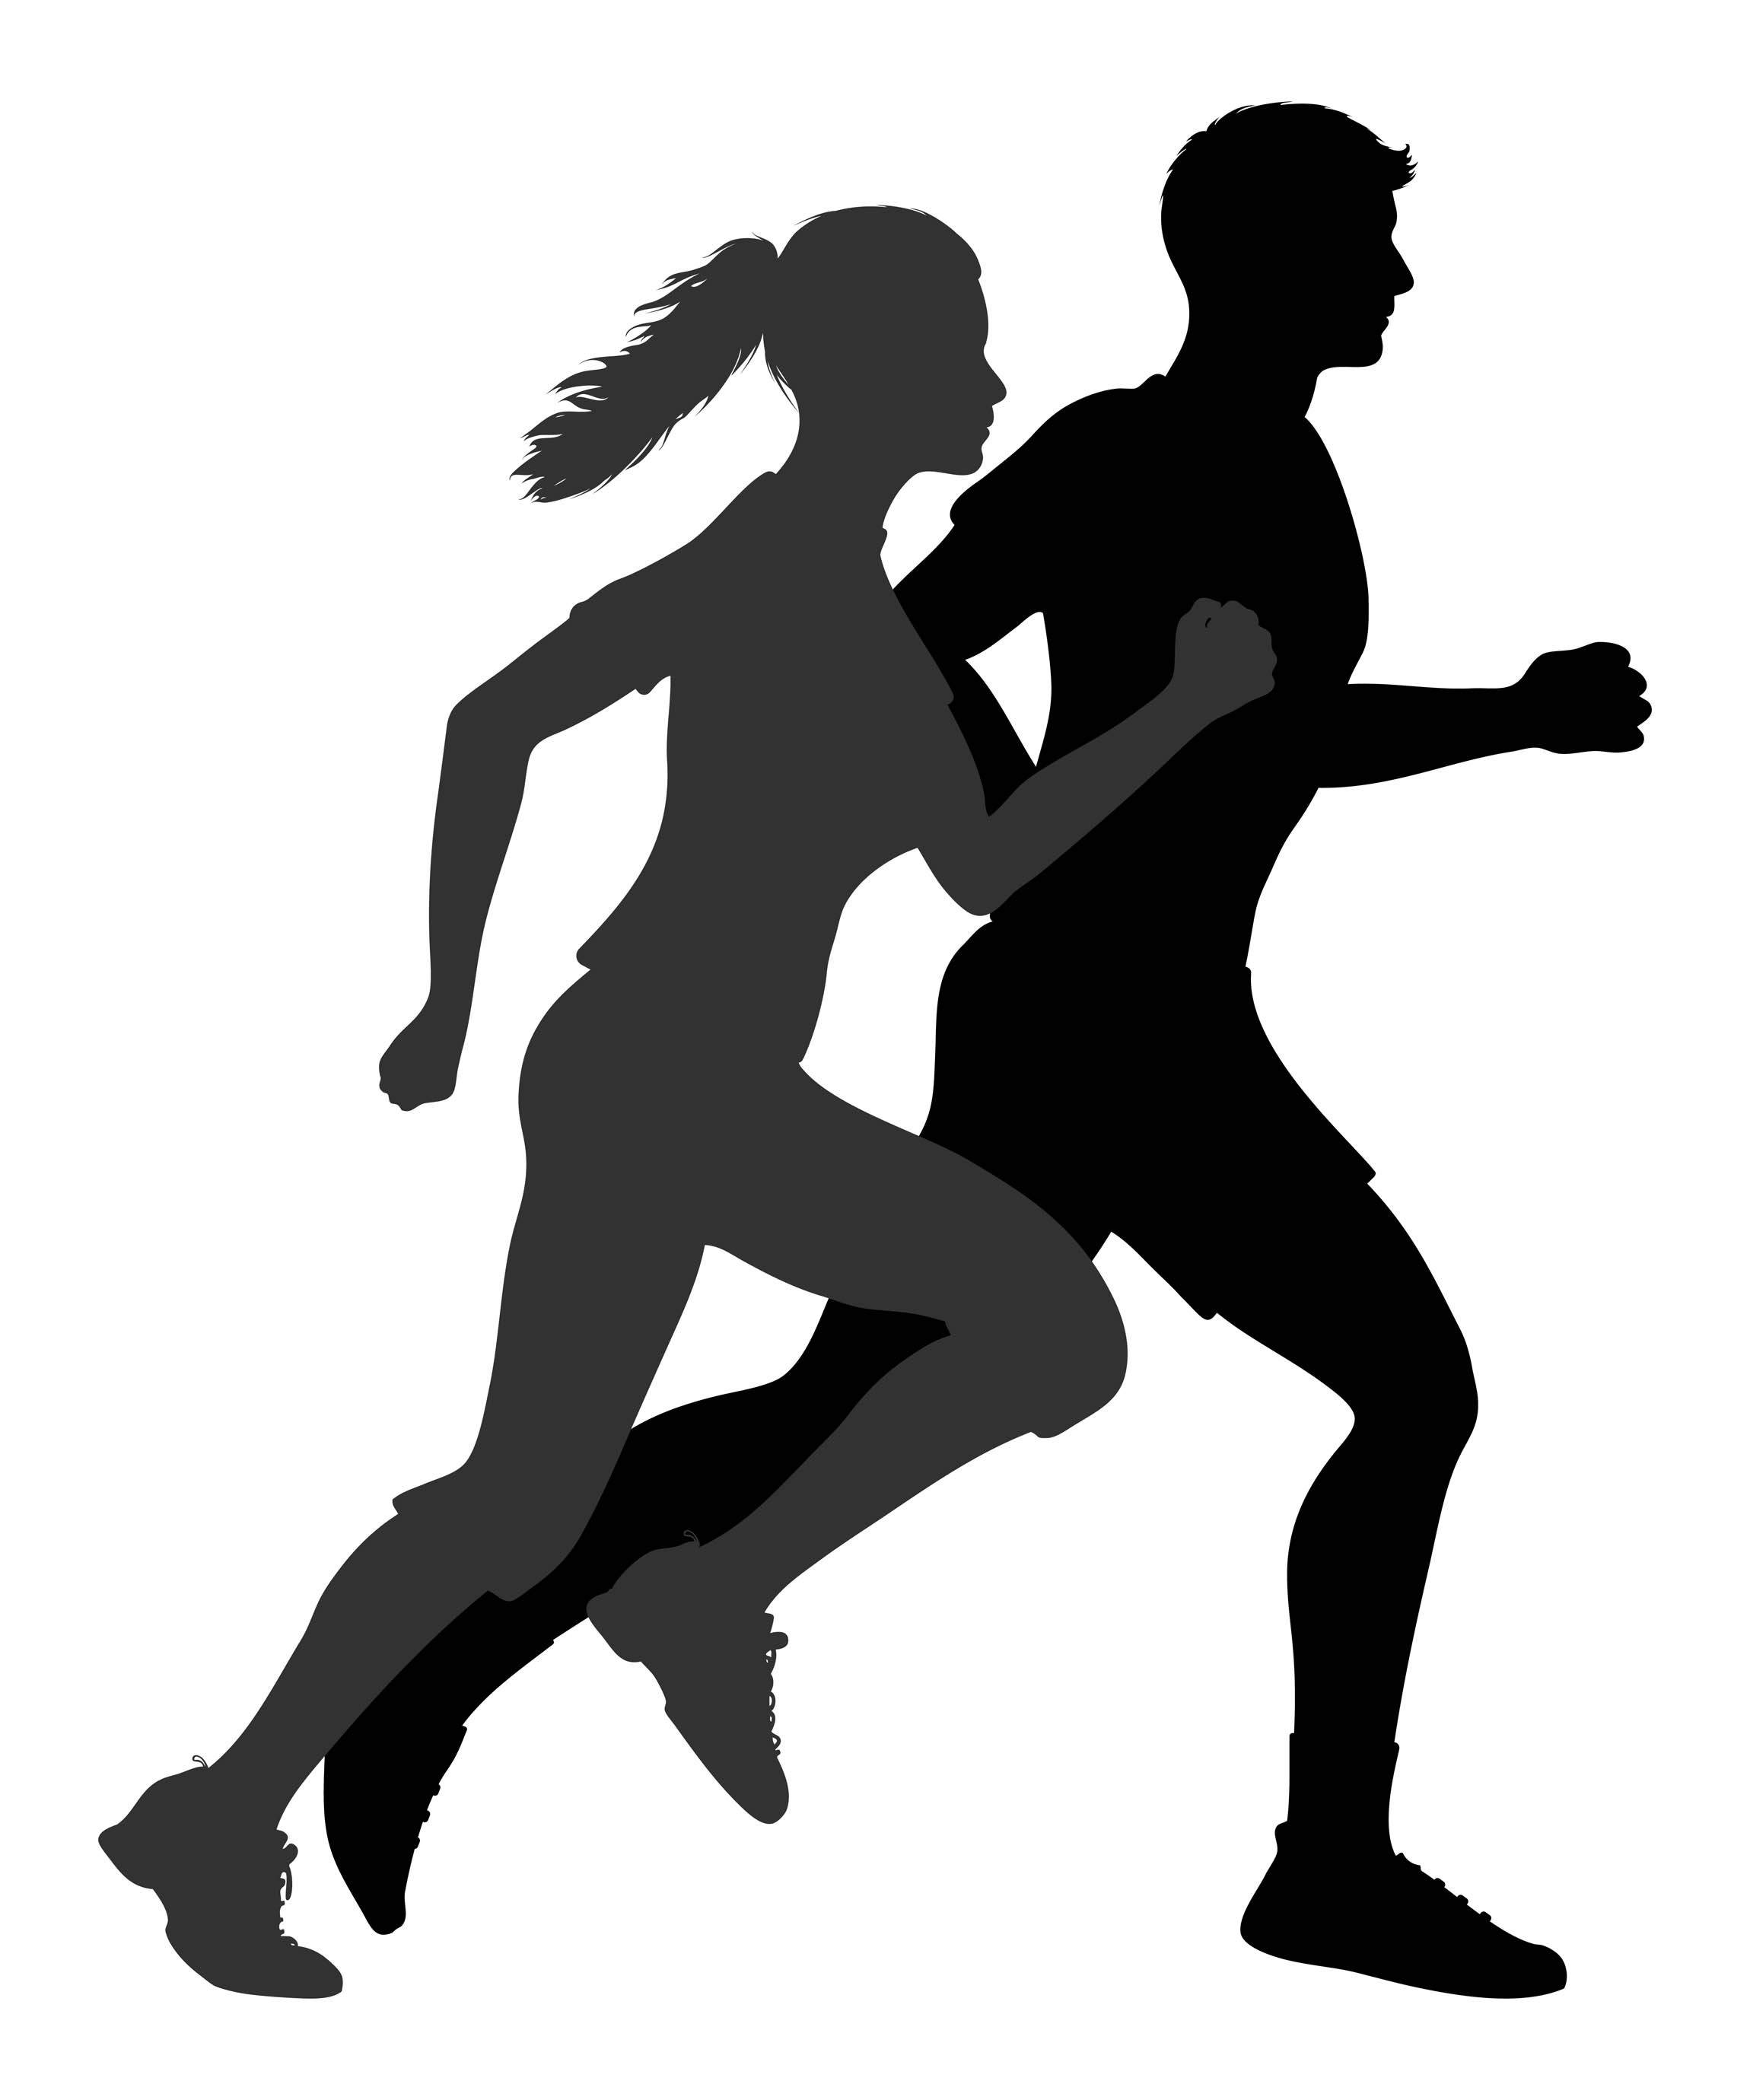 silhouette of runner at getdrawings com free for personal use rh getdrawings com clipart runner crossing finish line clipart runners silhouette